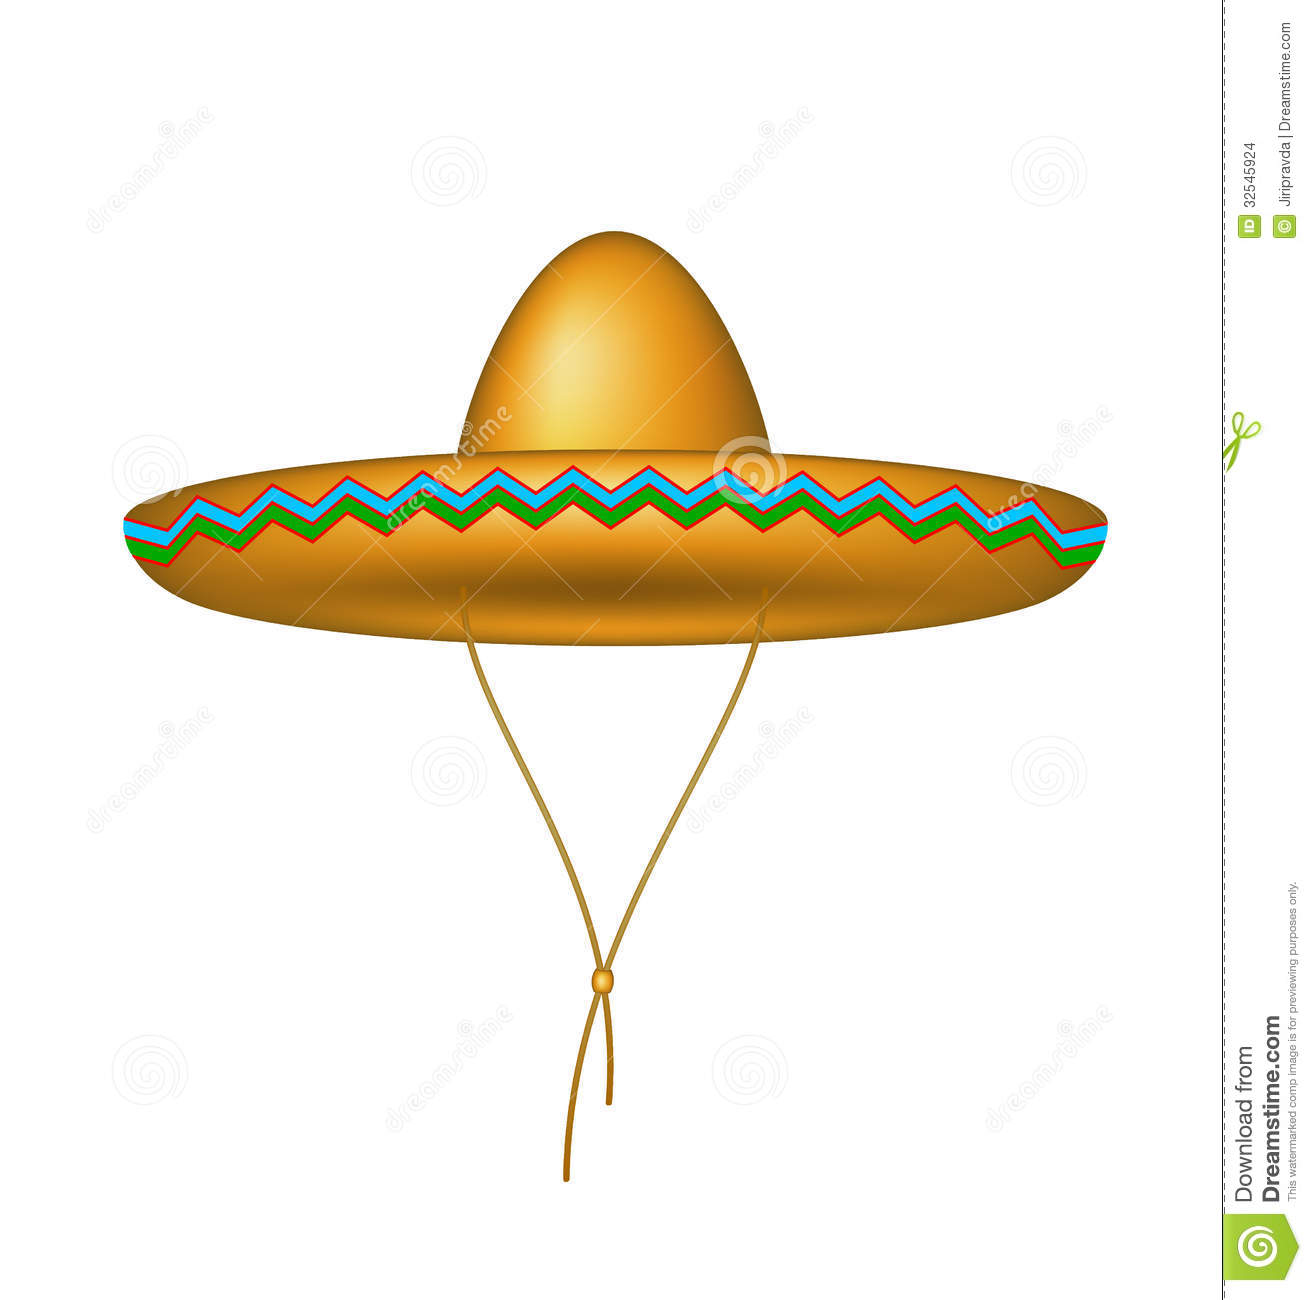 Sombrero hat in brown design on white background.